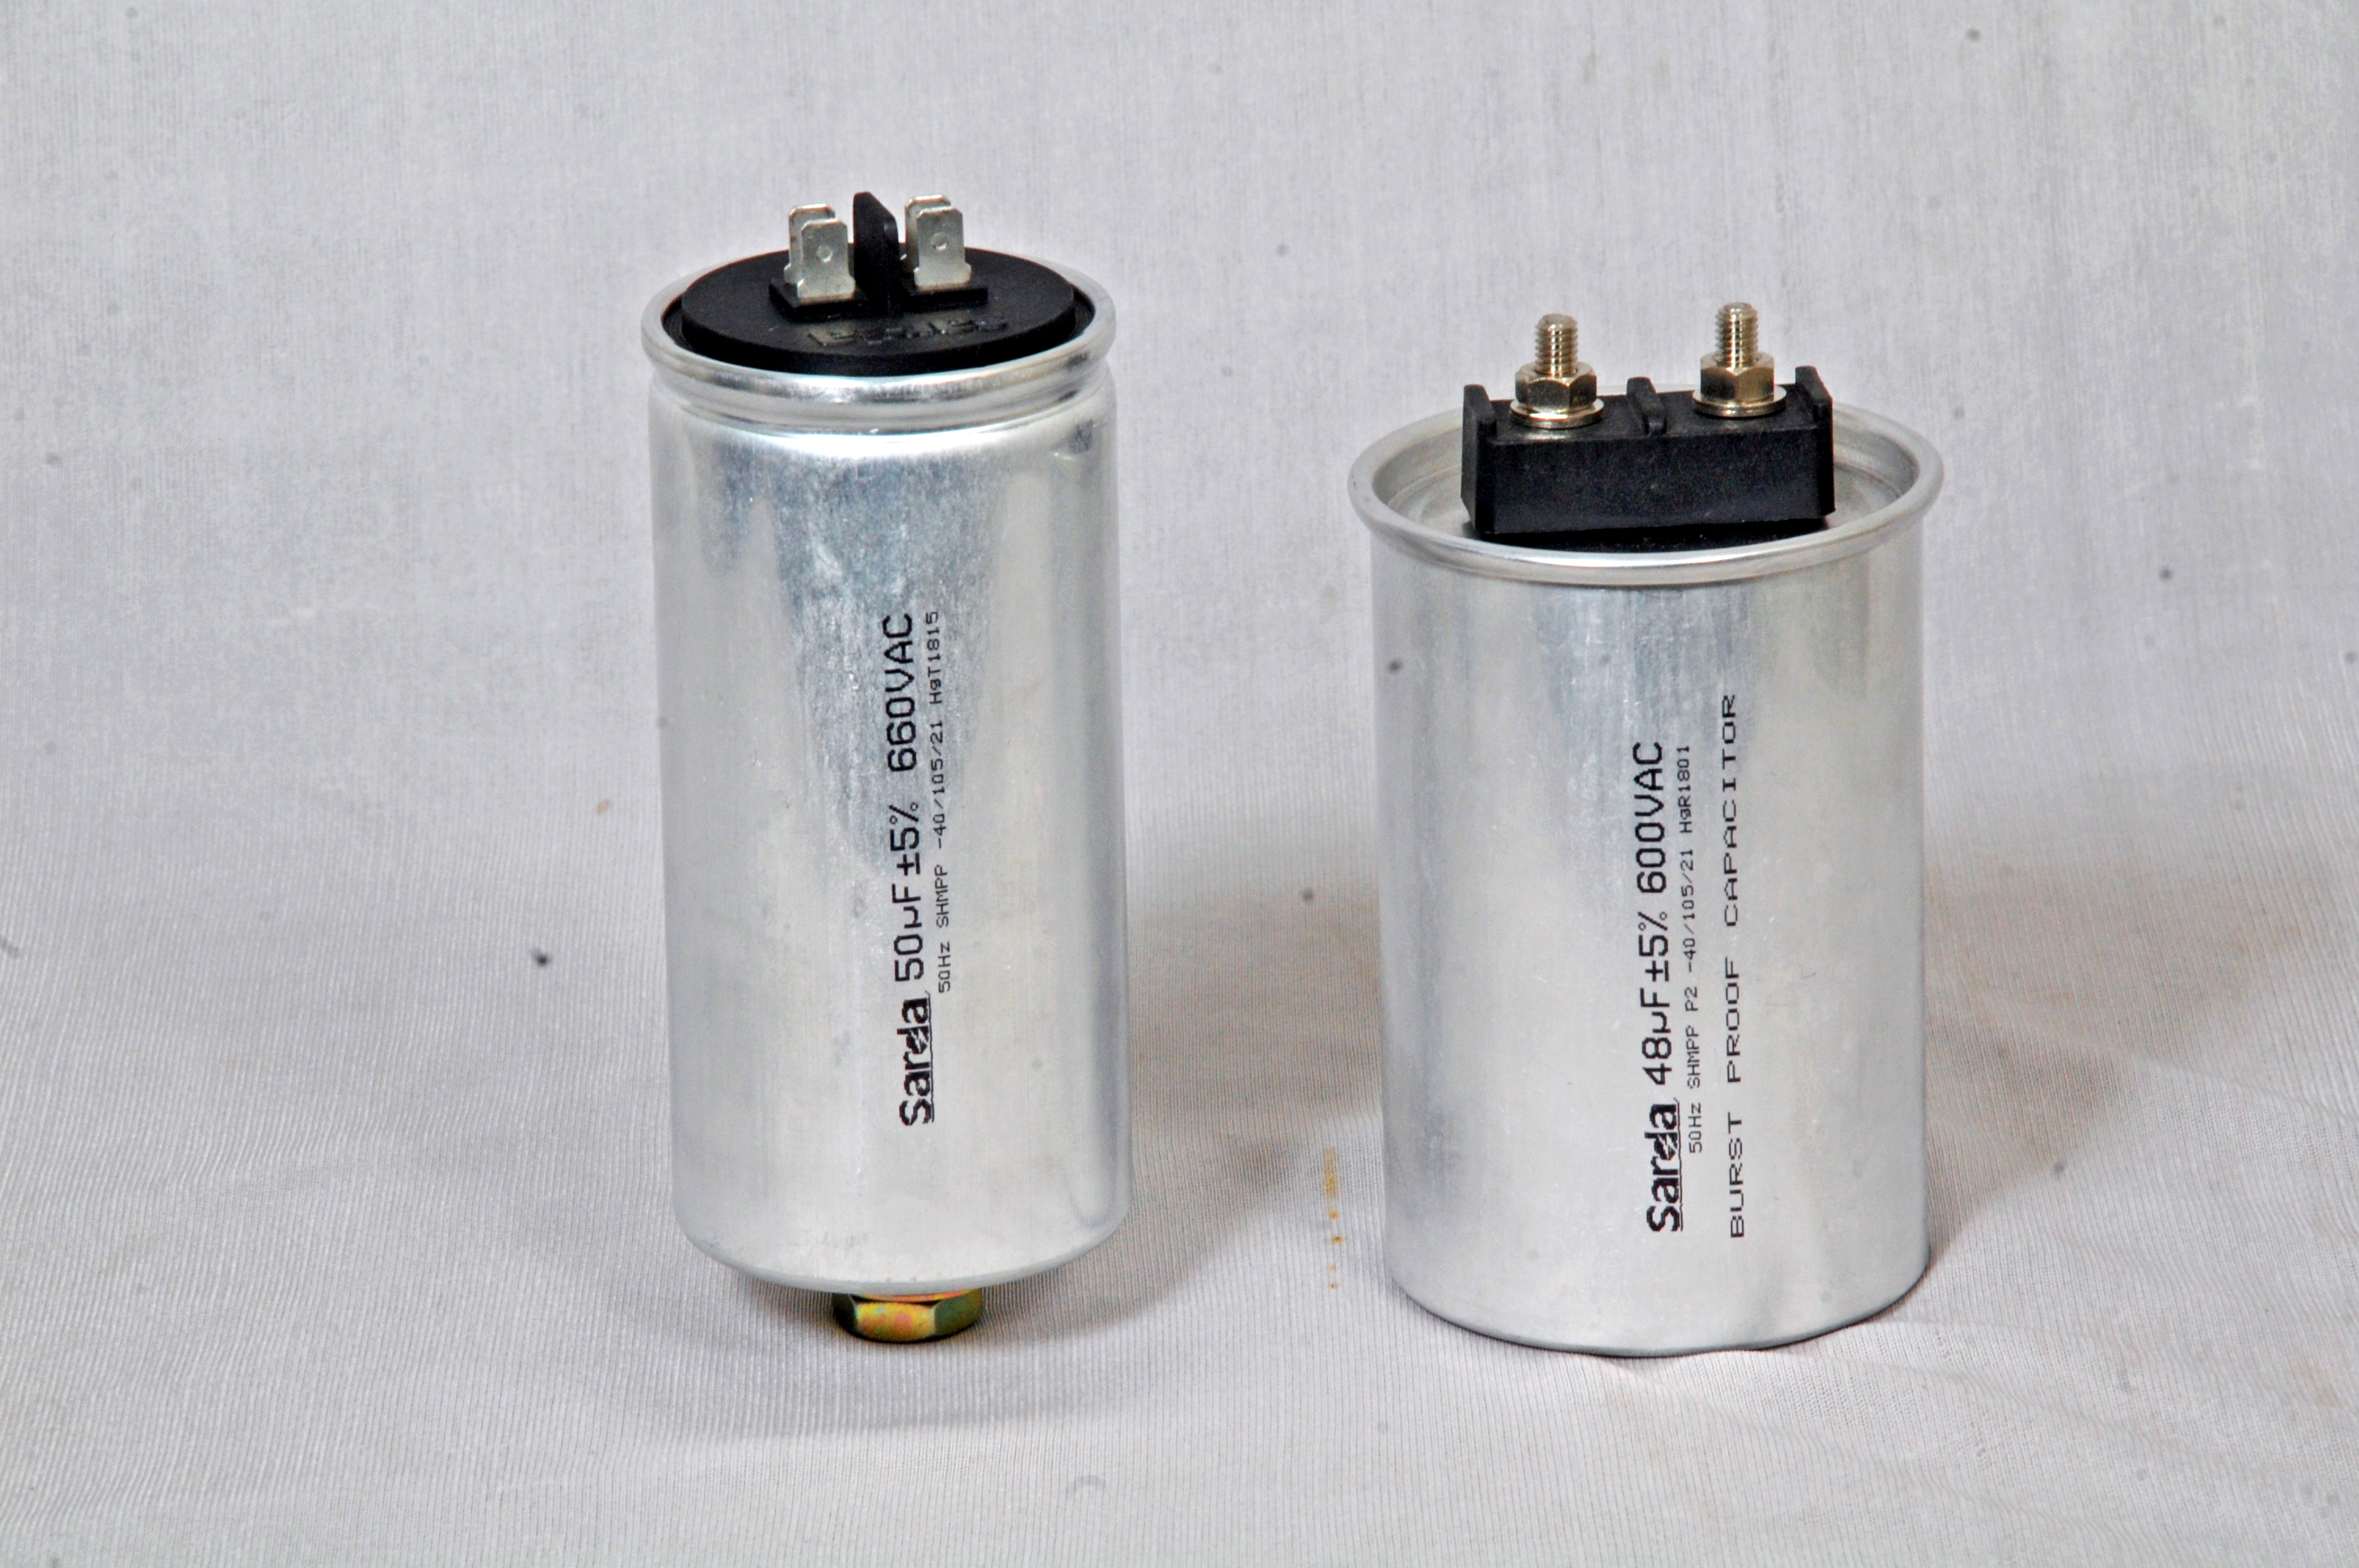 Sarda Wires Capacitor Type Fan Control Wiring These Are Special Of Capacitors Made Heavy Edge Zn Al Alloy Metallised Polypropylene Film For Handling Higher Currents And Ensuring